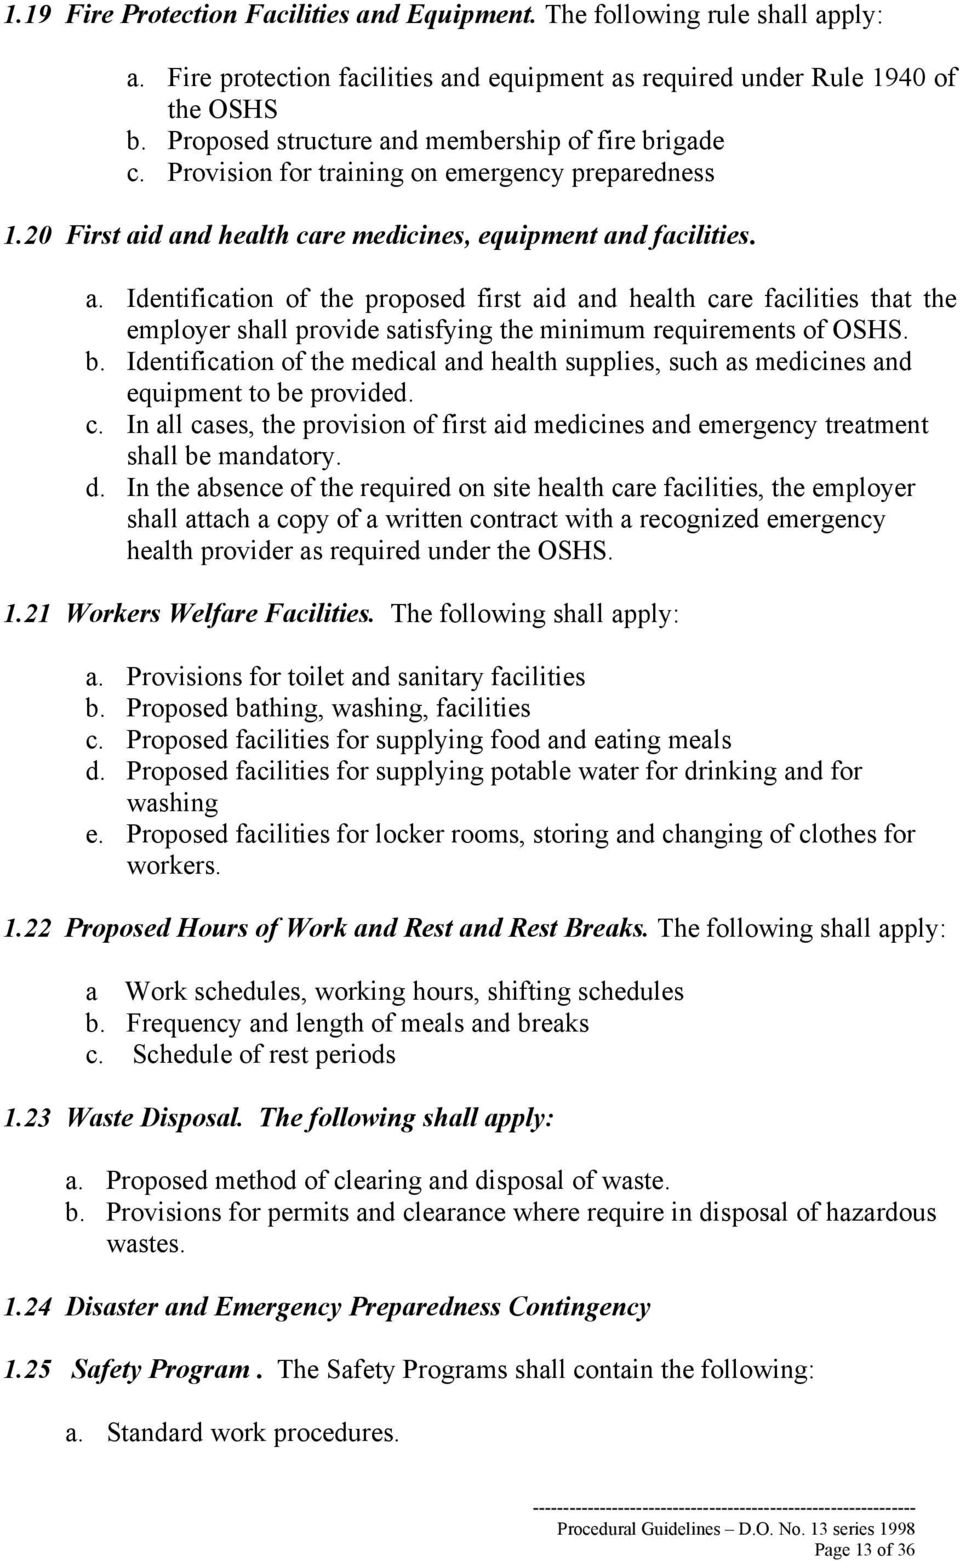 Attire-permit for fire work: clearance, safety instruction